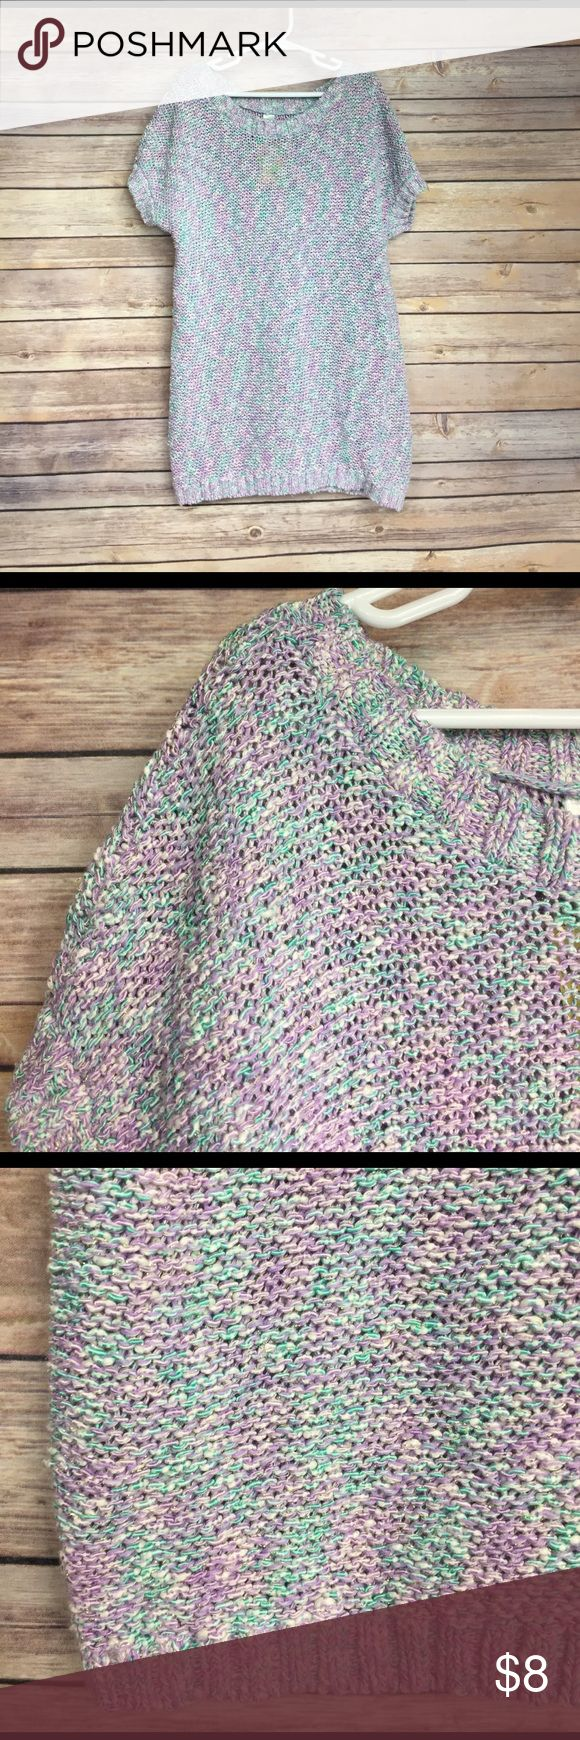 💜Size XL tunic sweater Cherokee brand Pretty pastels for spring!  Has sparkle threading throughout for a bit of pizzazz!  Size 14-16.  GUC.  🛍Bundle and save!  25% off automatically when you purchase 2+ items 🛍 Cherokee Shirts & Tops Sweaters